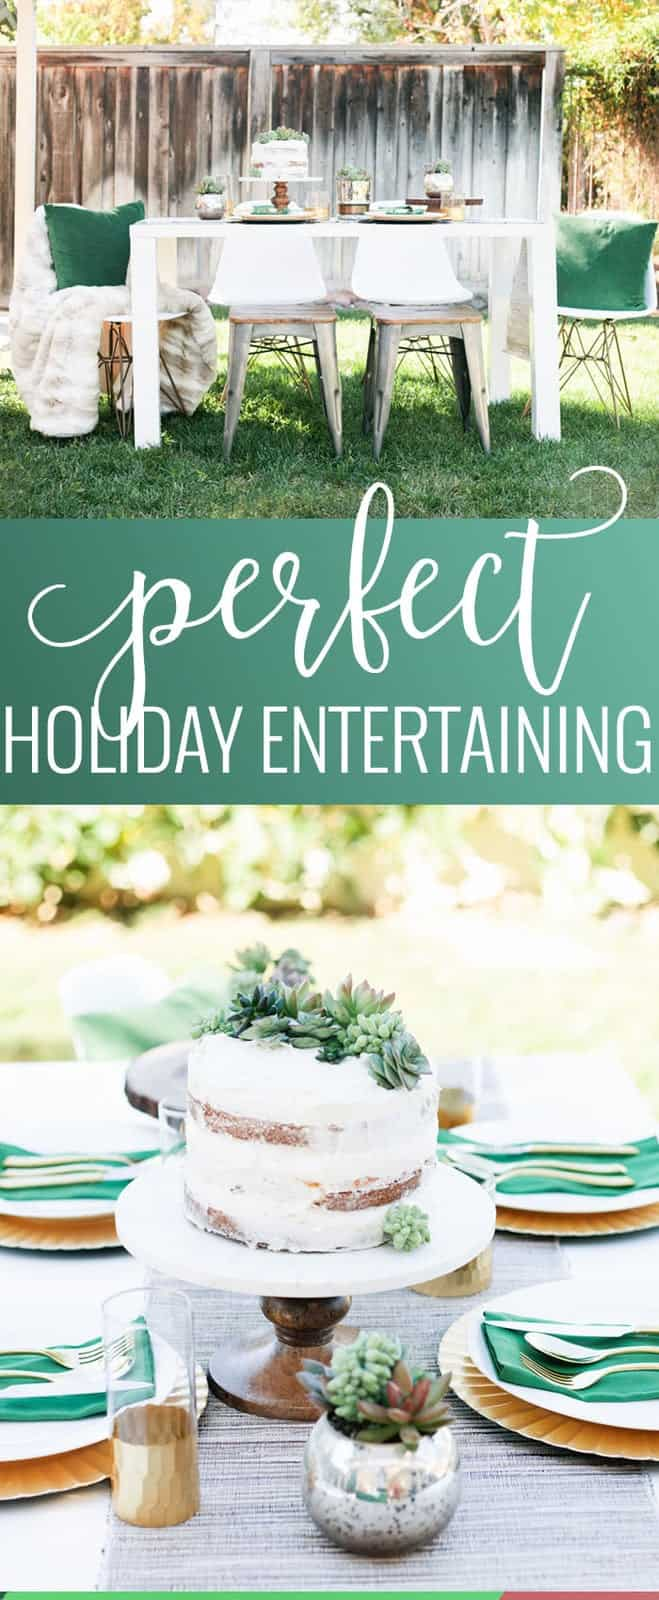 Perfect Holiday Entertaining Tips | holiday entertaining ideas | how to host a holiday dinner | holiday dinner ideas | holiday tablescapes | holiday hosting tips || Oh So Delicioso #holidayentertaining #holidaytablescape #holidayhosting